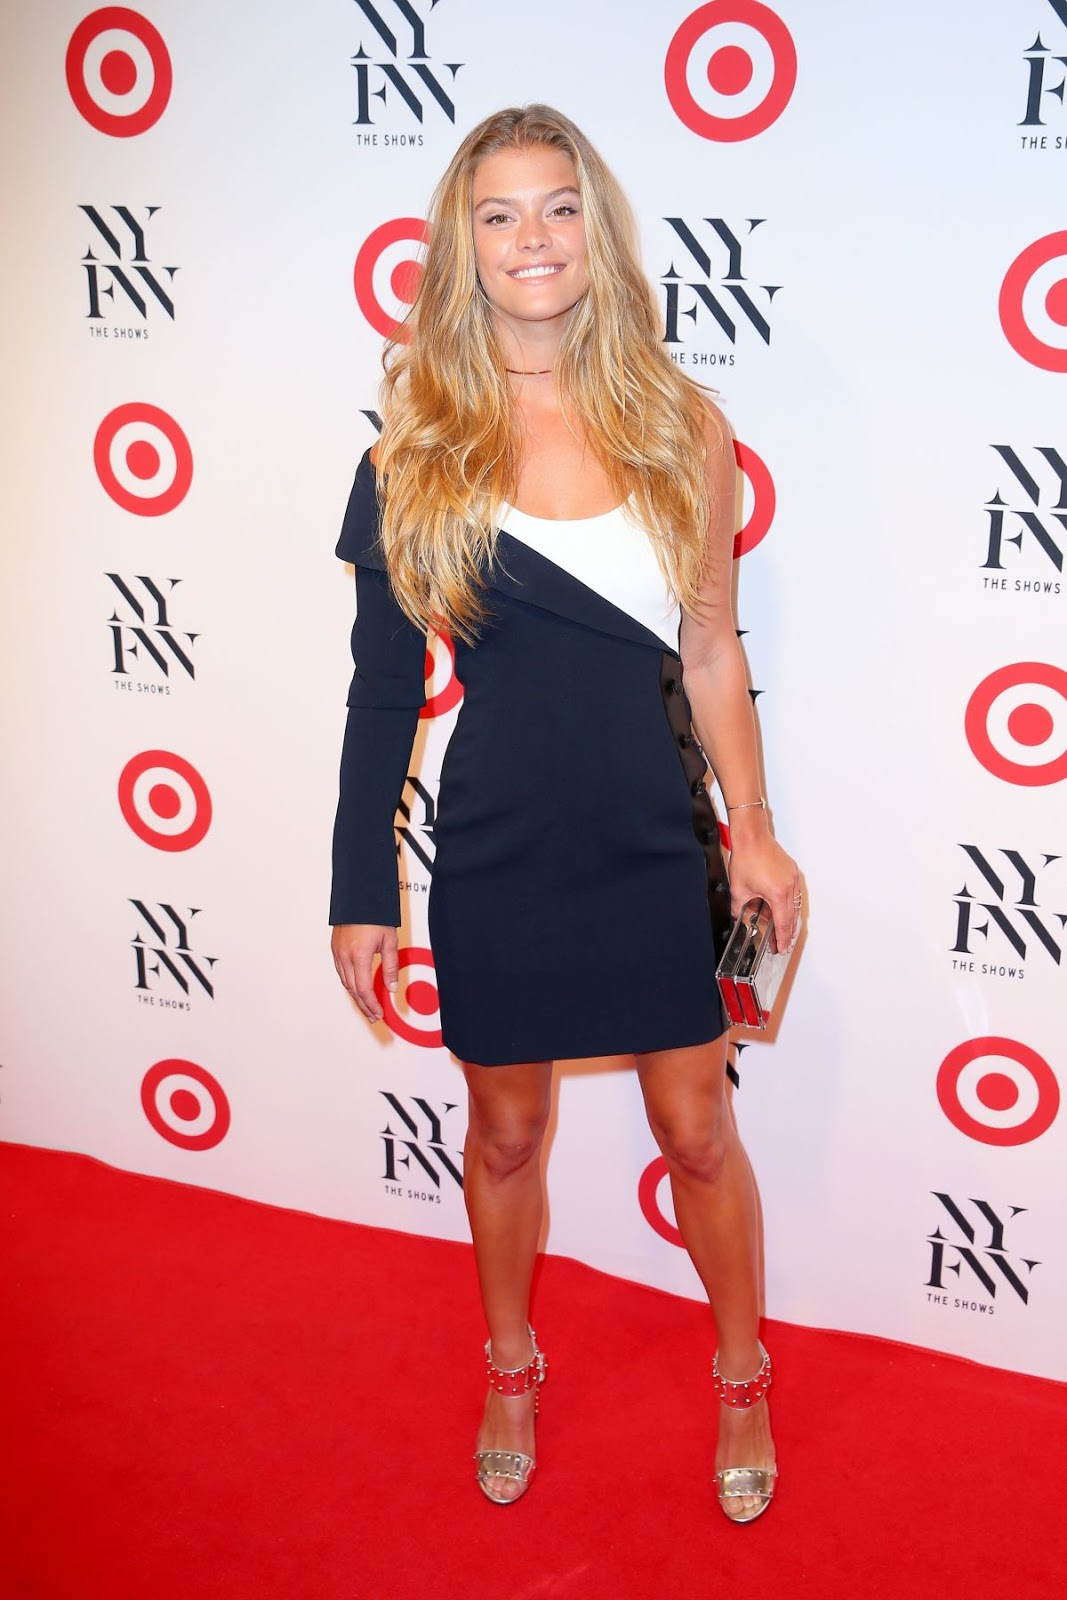 HQ Photos of Nina Agdal At Target Img NYFW Kickoff Party In New York